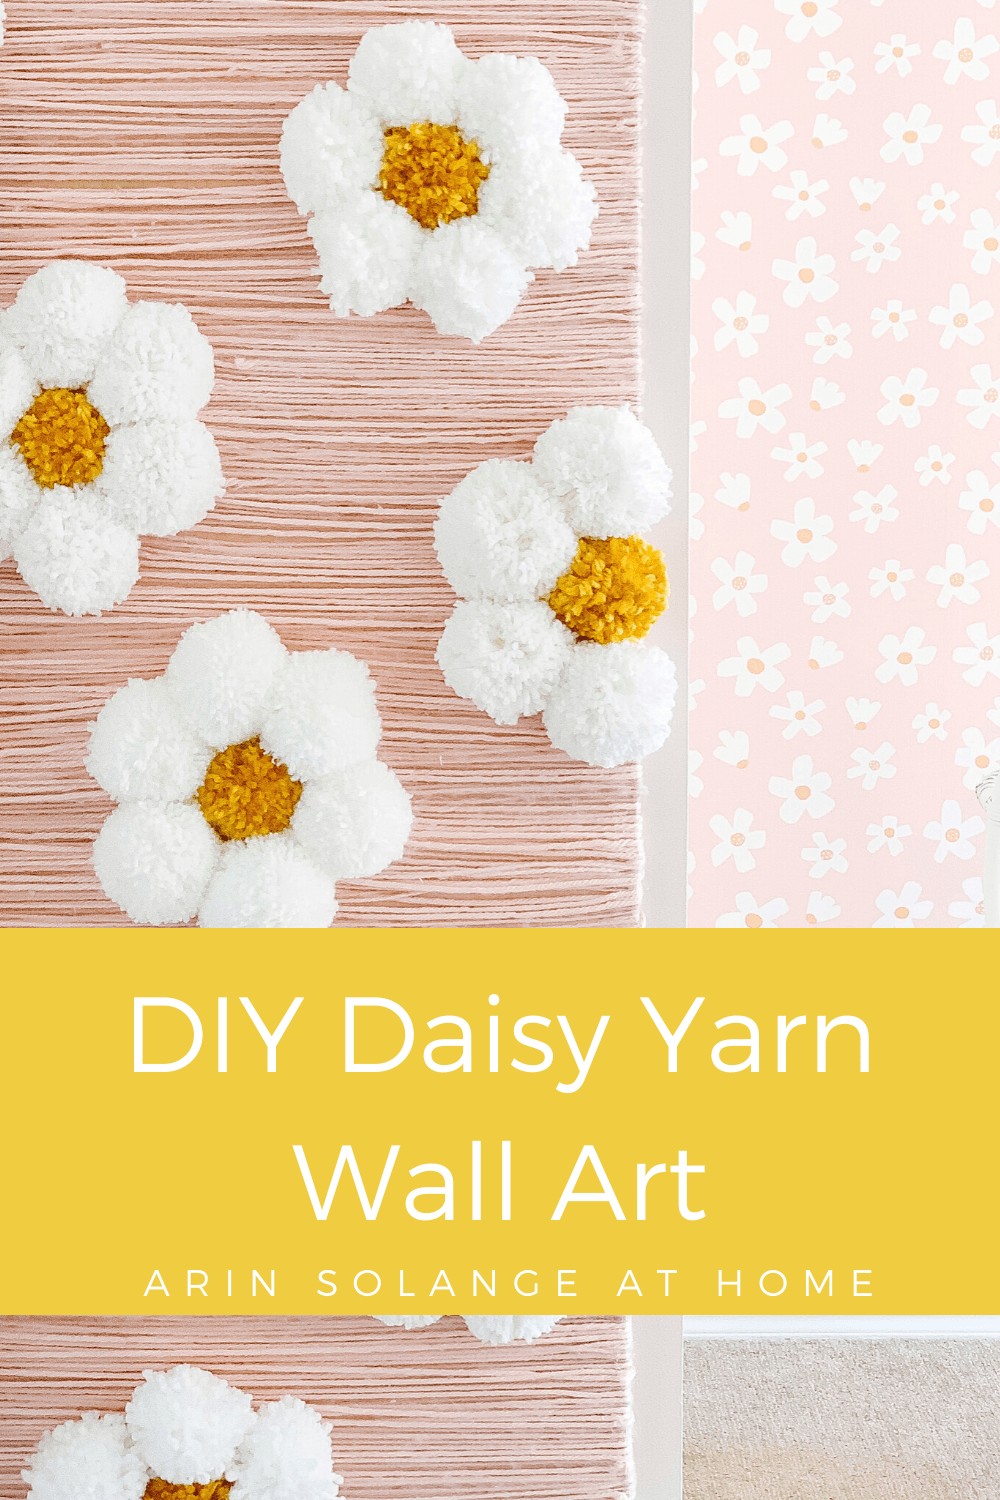 DIY yarn wall art of Daisies